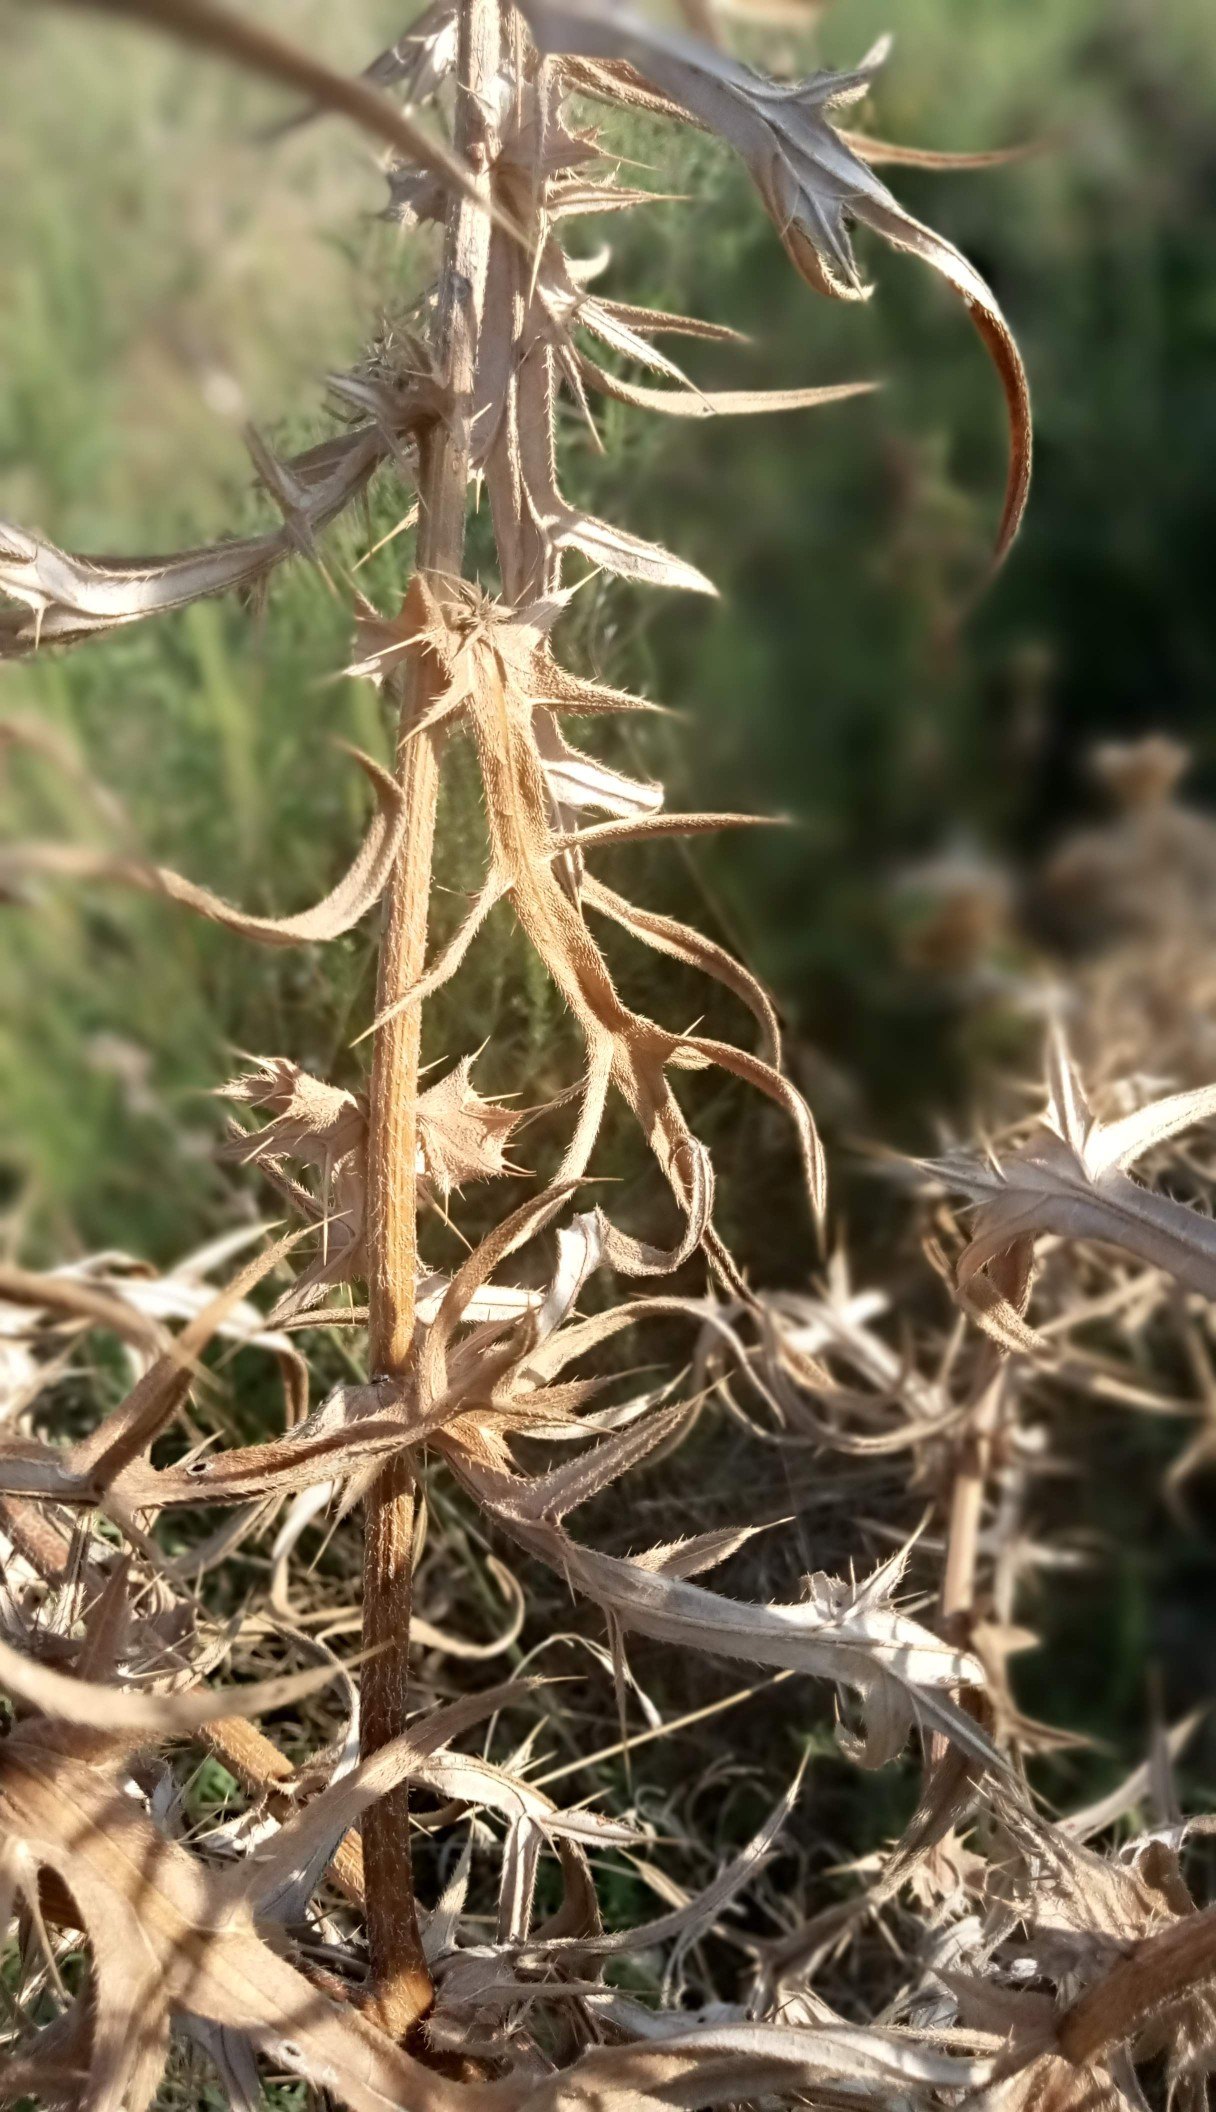 Dry autumn plants photo